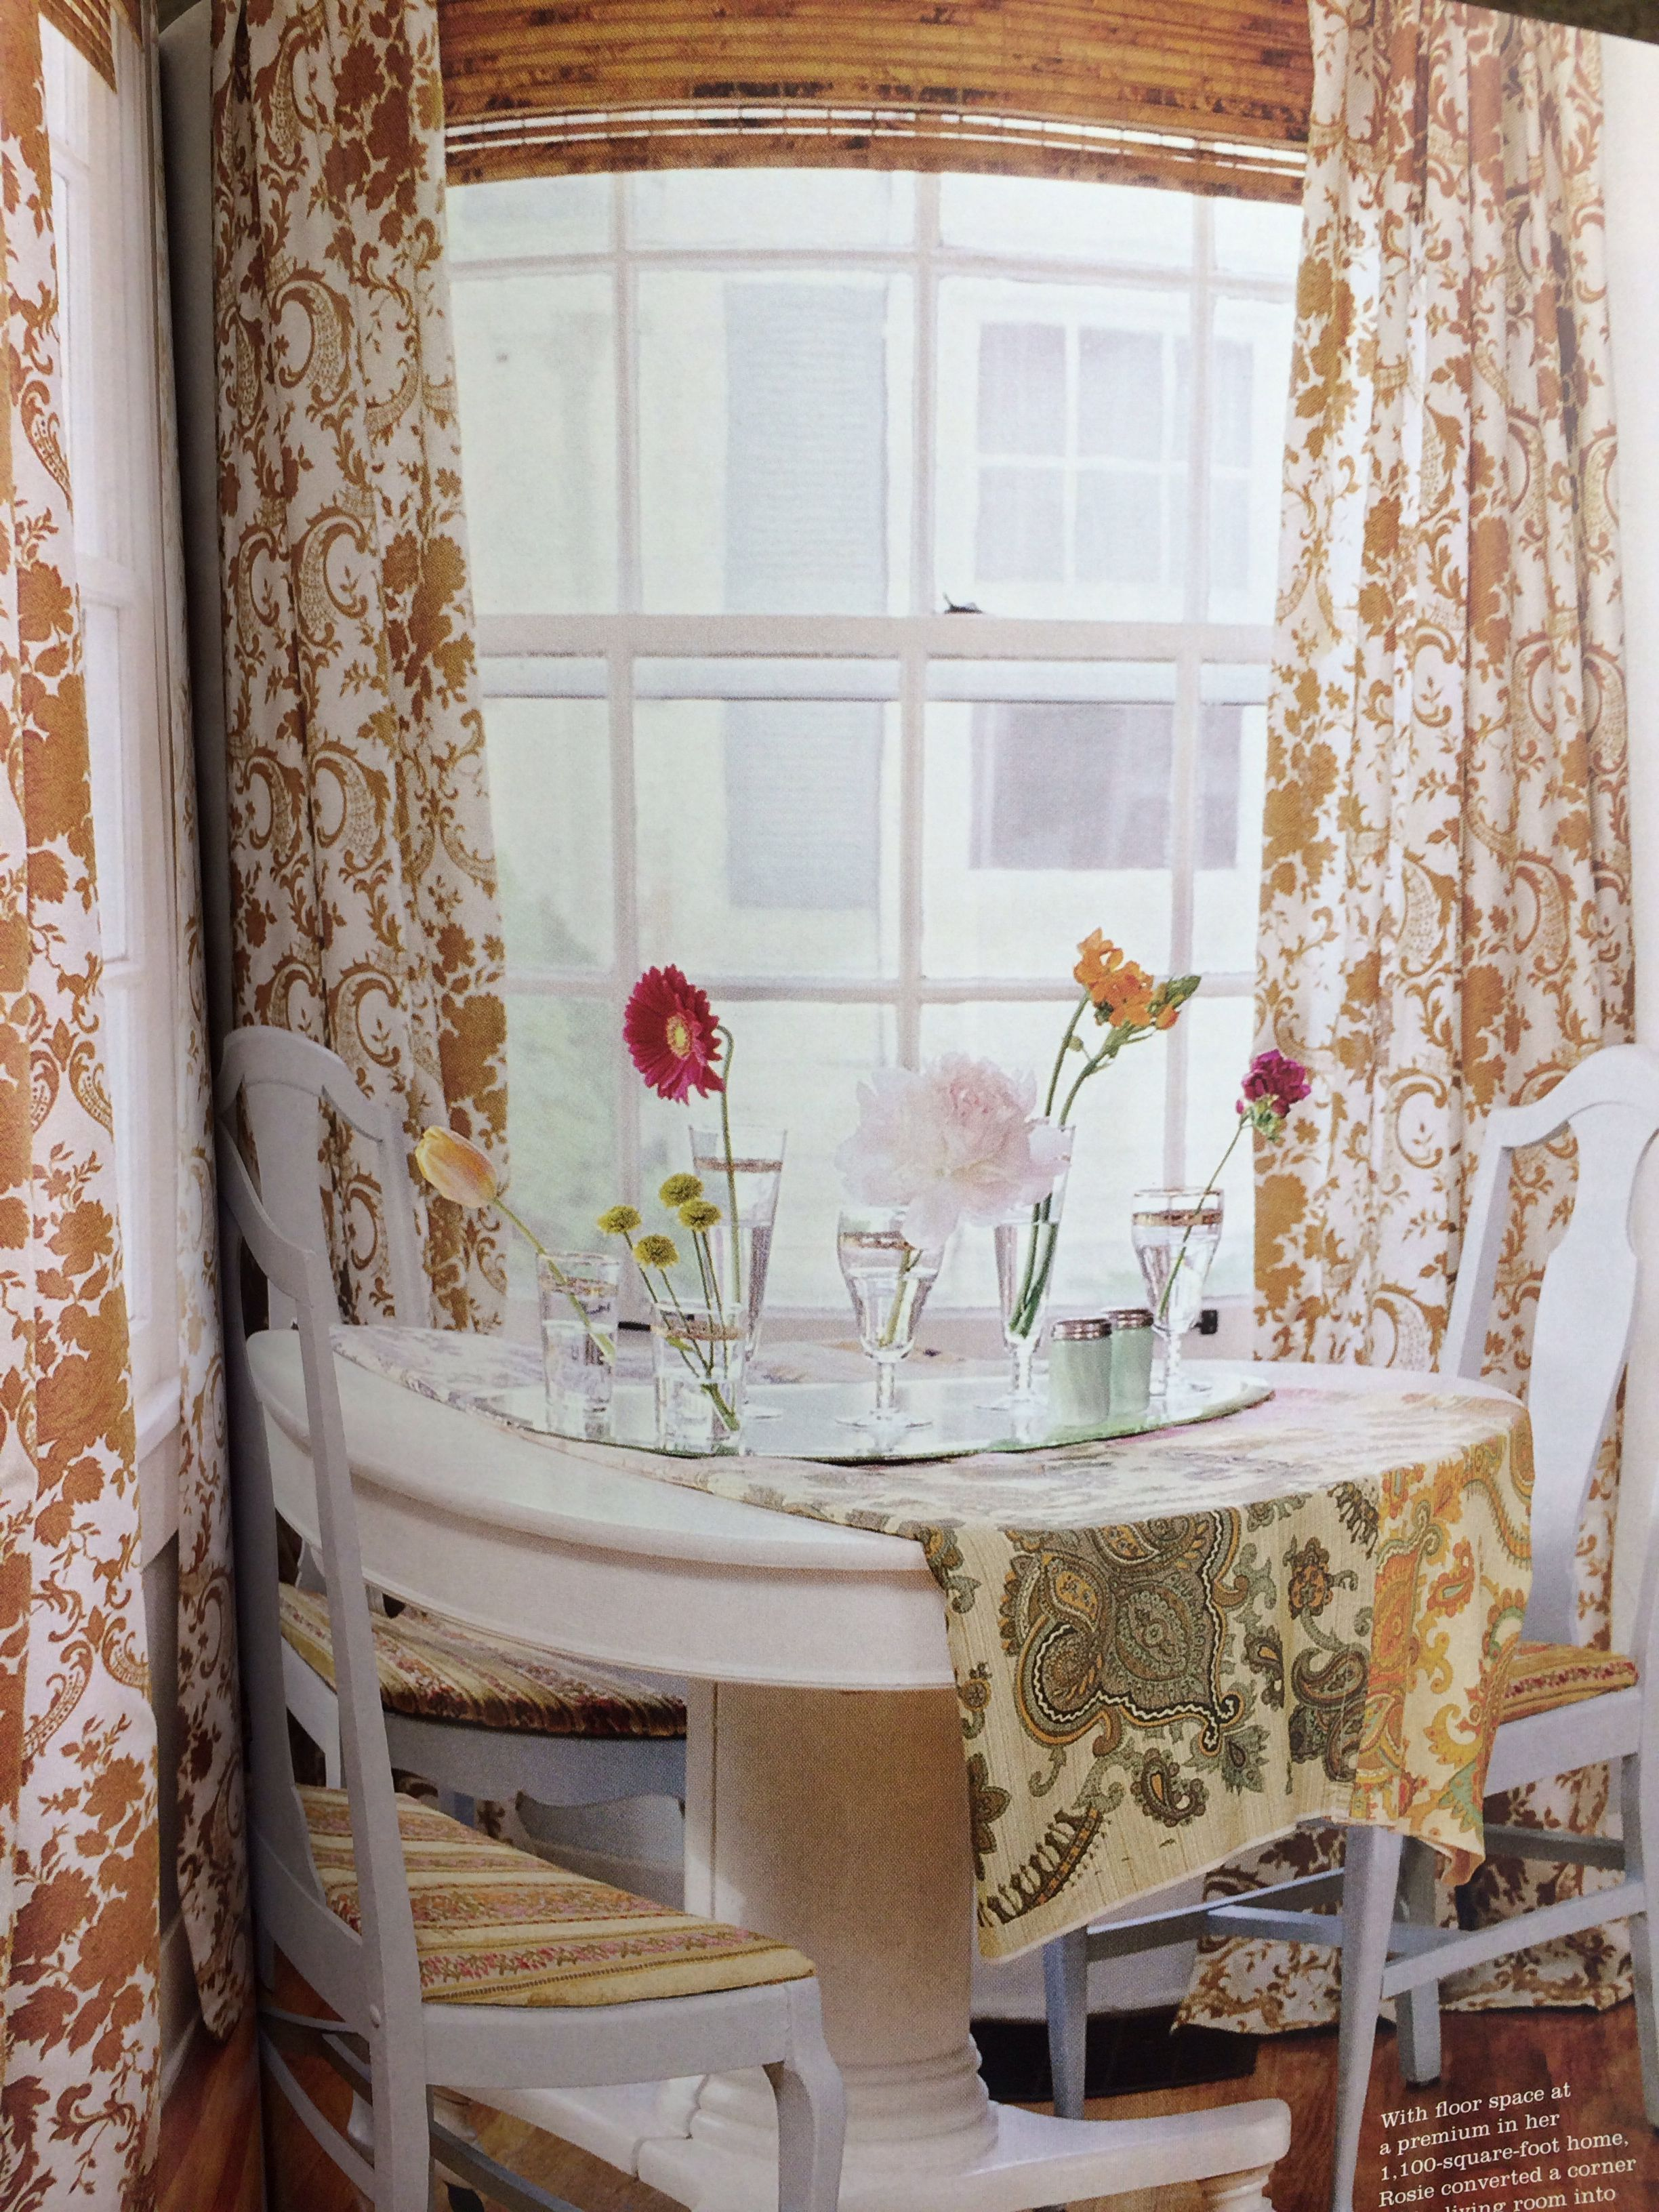 From cottage style mag bamboo blinds with mustardgold tone and